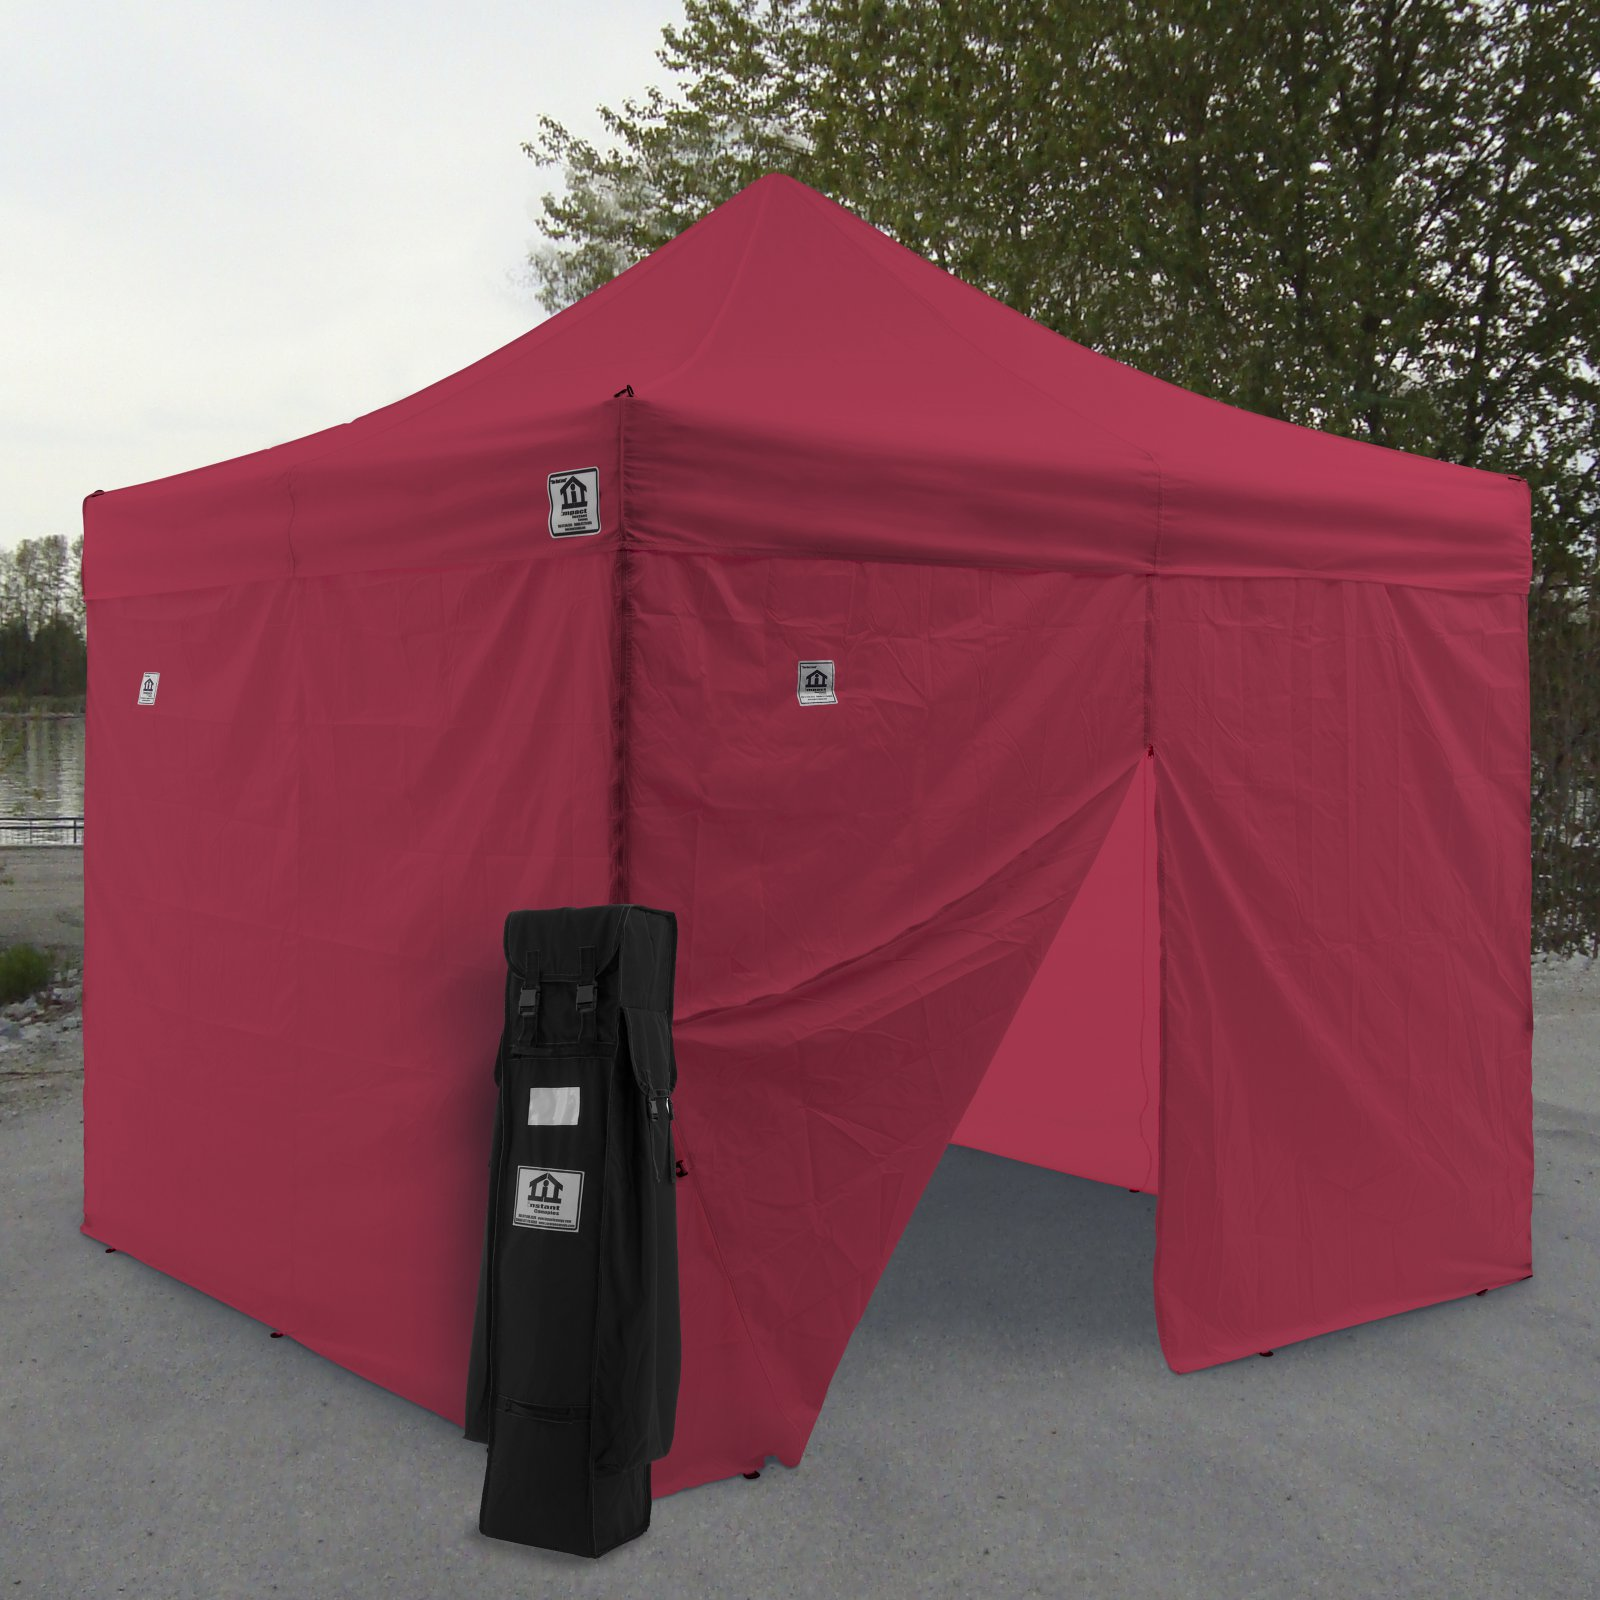 Click here to buy Impact Canopy AOL 10x10 ft. Ez Pop Up Canopy Tent Instant Canopy Aluminum with Wheeled Roller Bag and Sidewalls by Impact Images Inc.